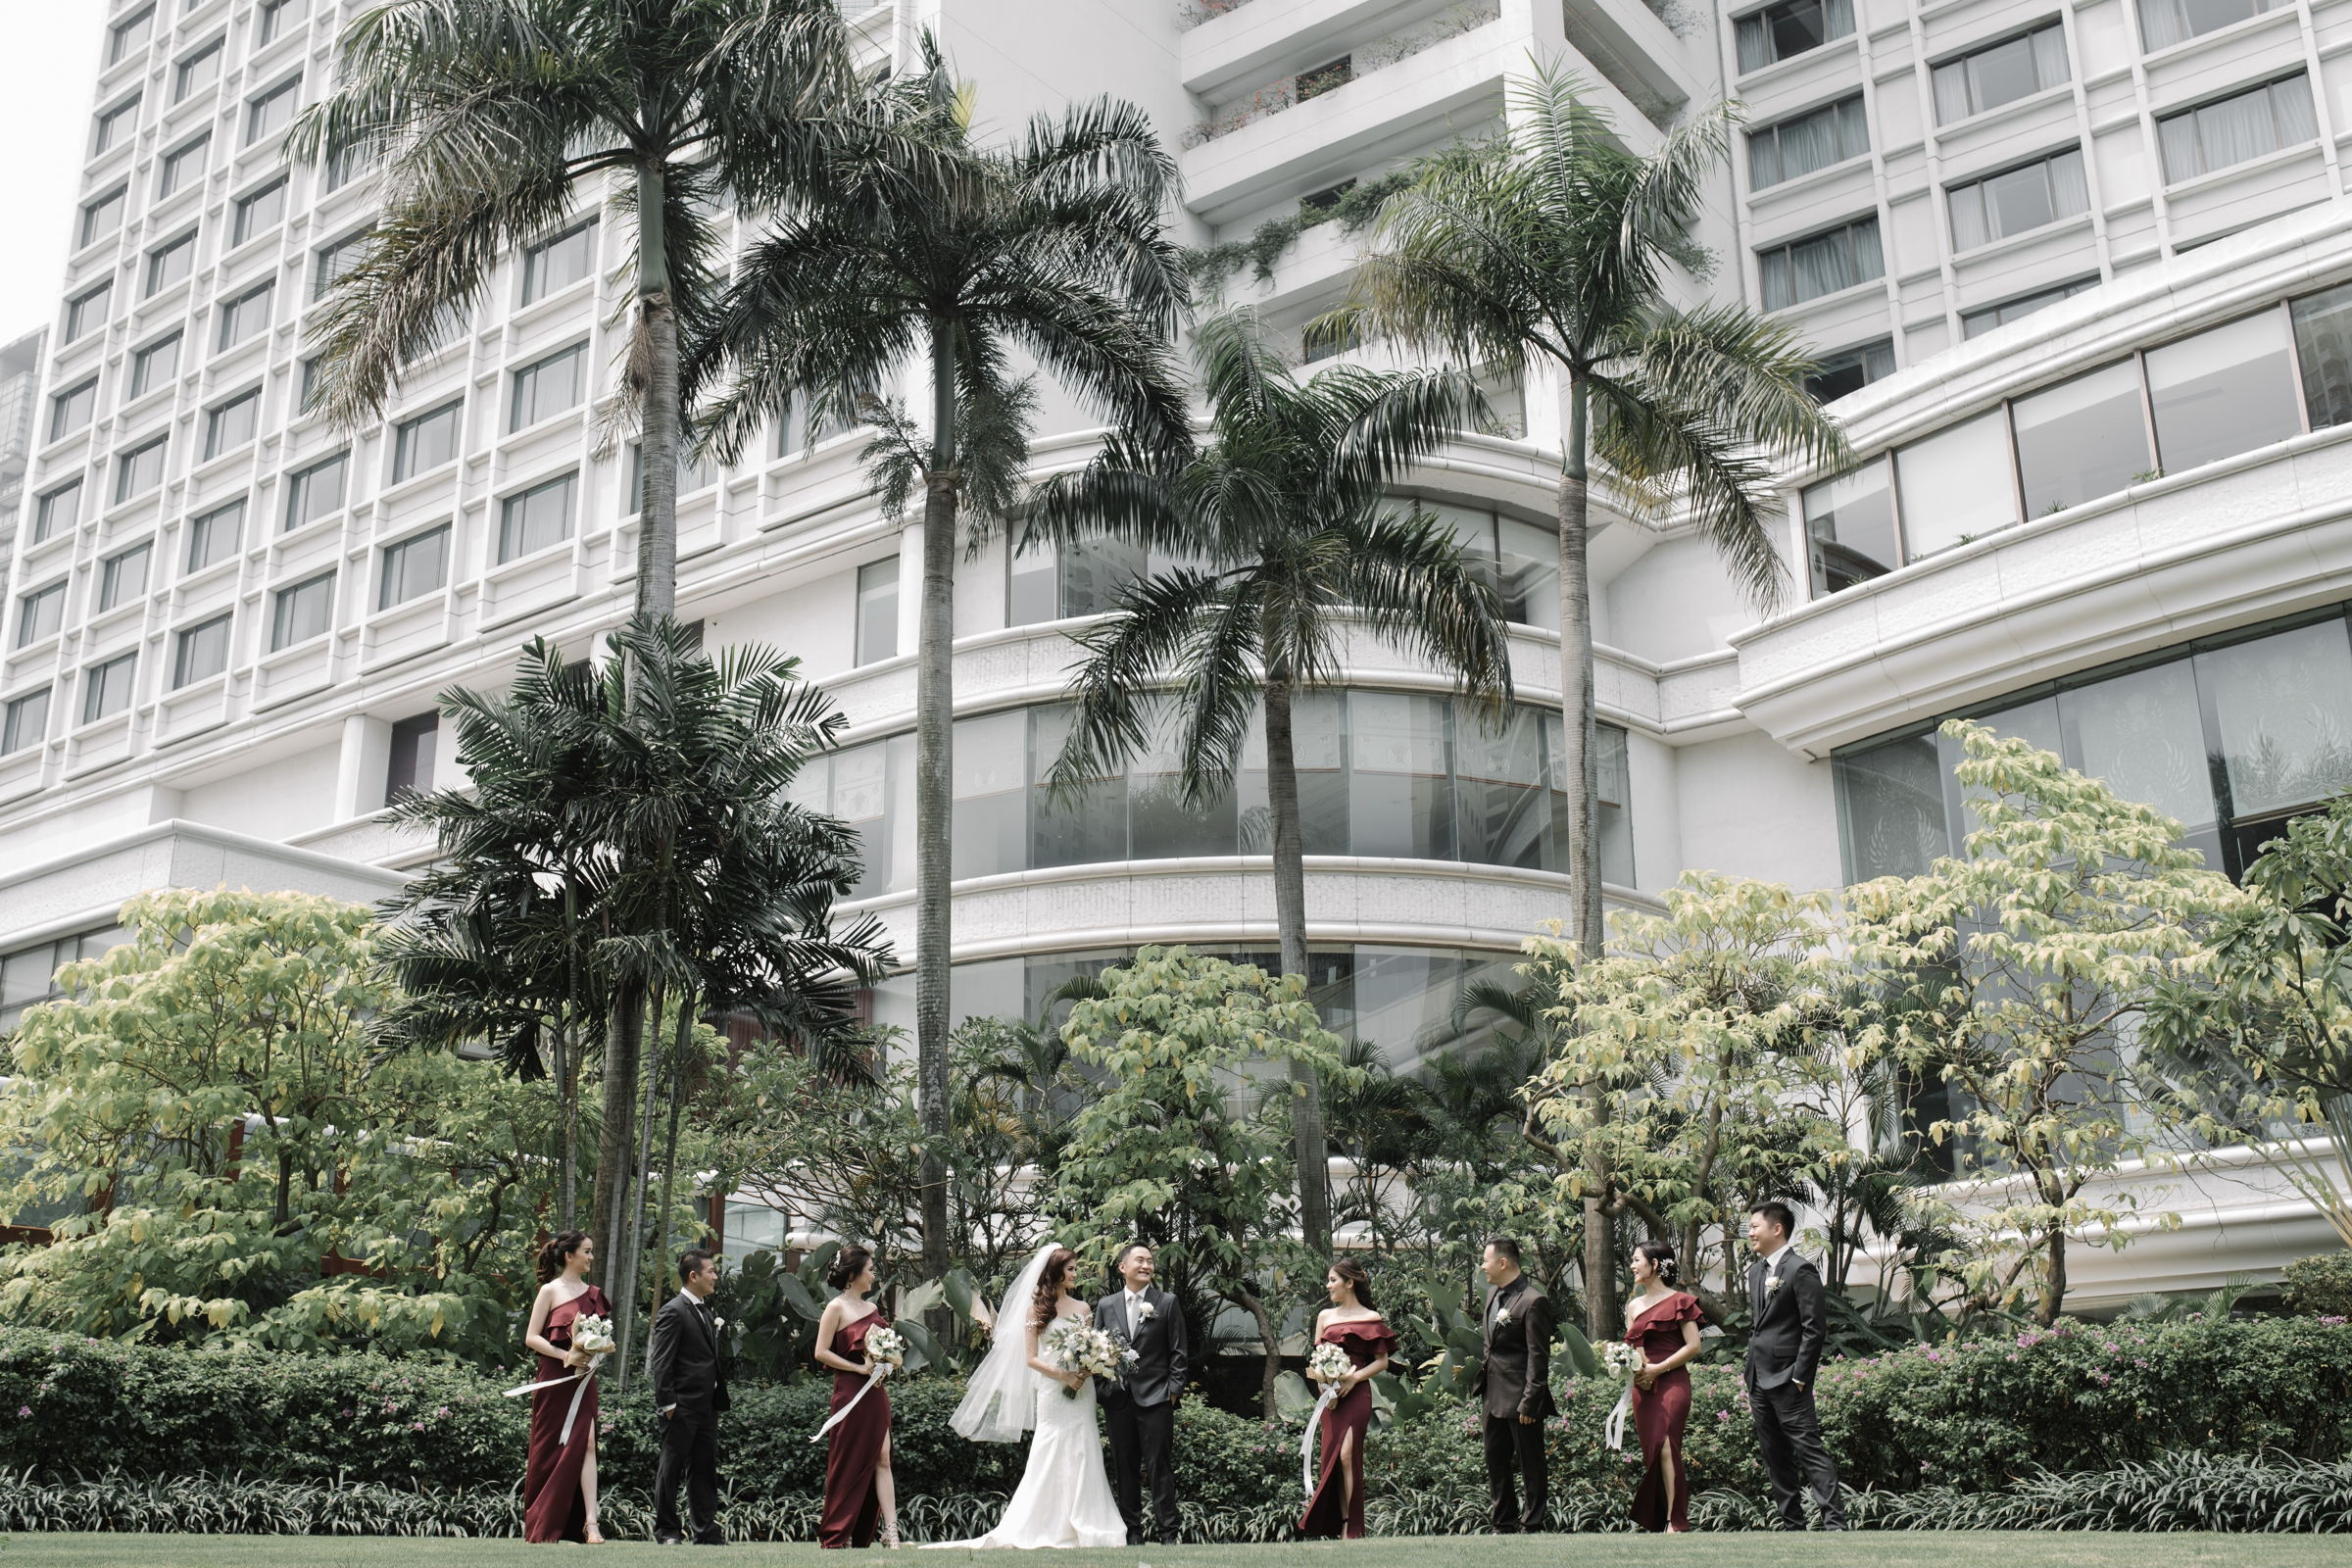 livia-reagan-wedding-raffles-jakarta-pyara-photo-gejoo 26.jpg